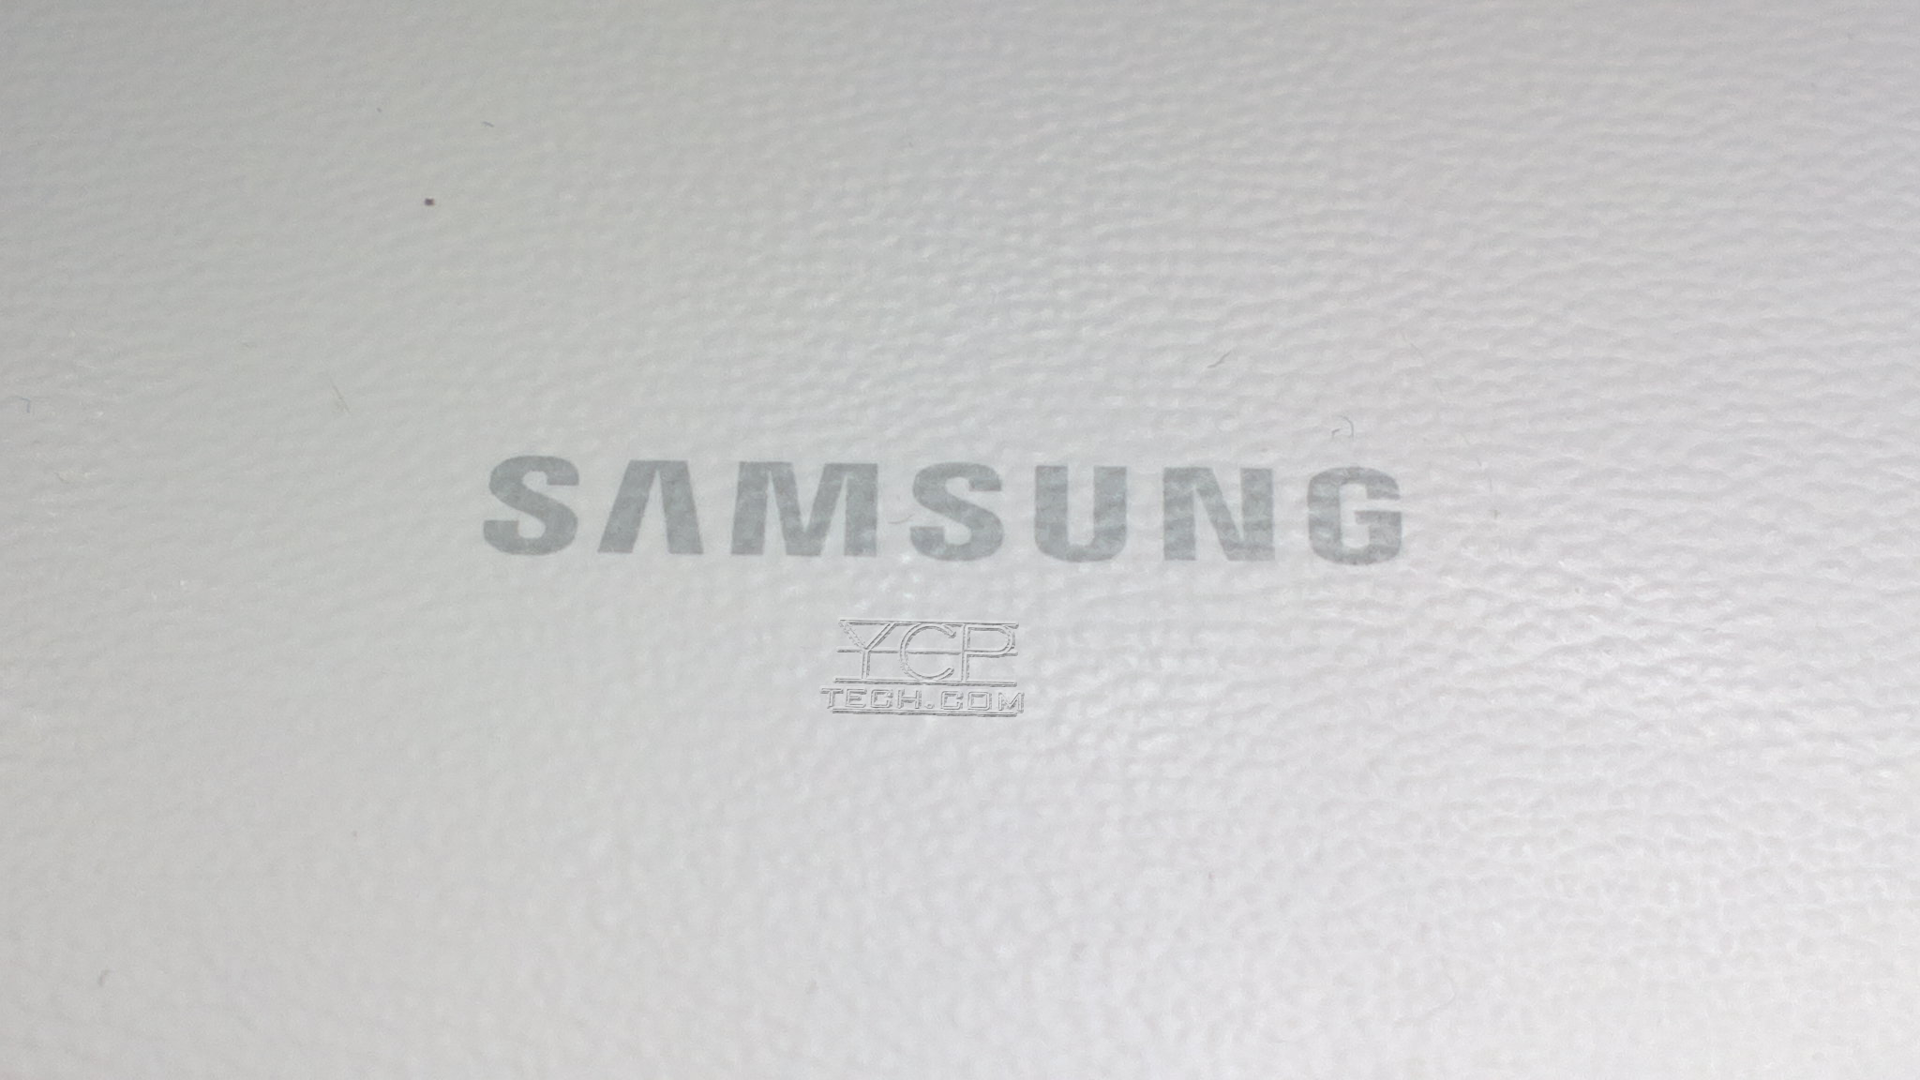 Samsung Galaxy Tab Pro Ycp Review Back Samsung Logo Graphics 471181 Hd Wallpaper Backgrounds Download